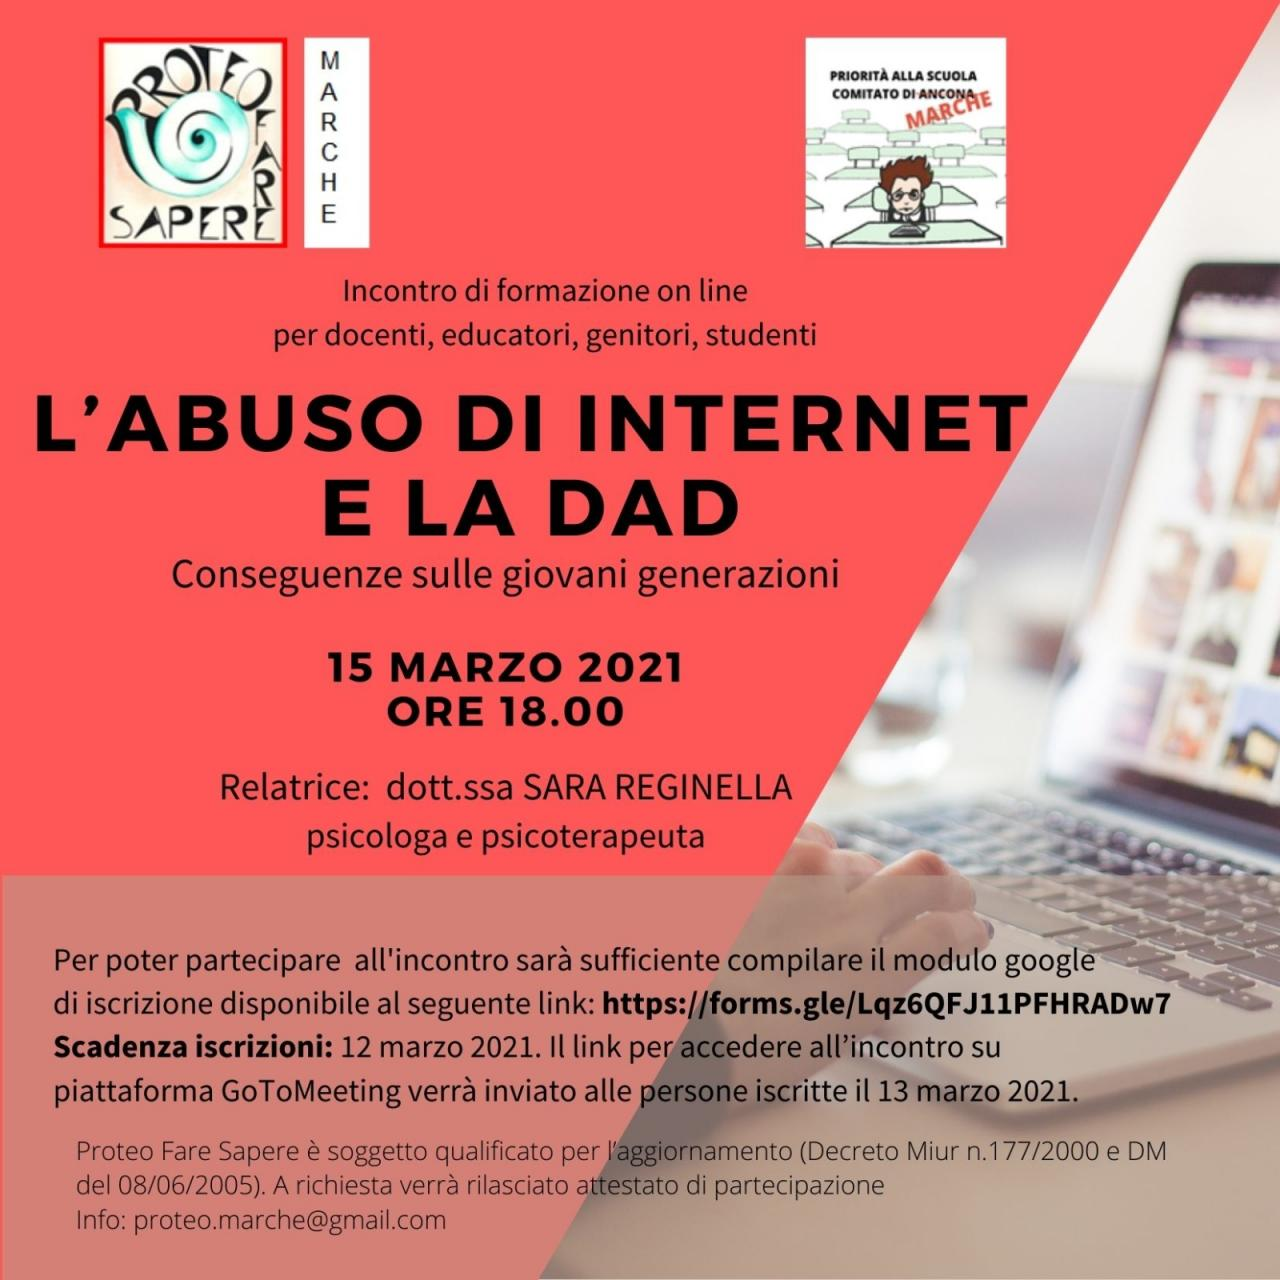 L'abuso di internet e la DAD